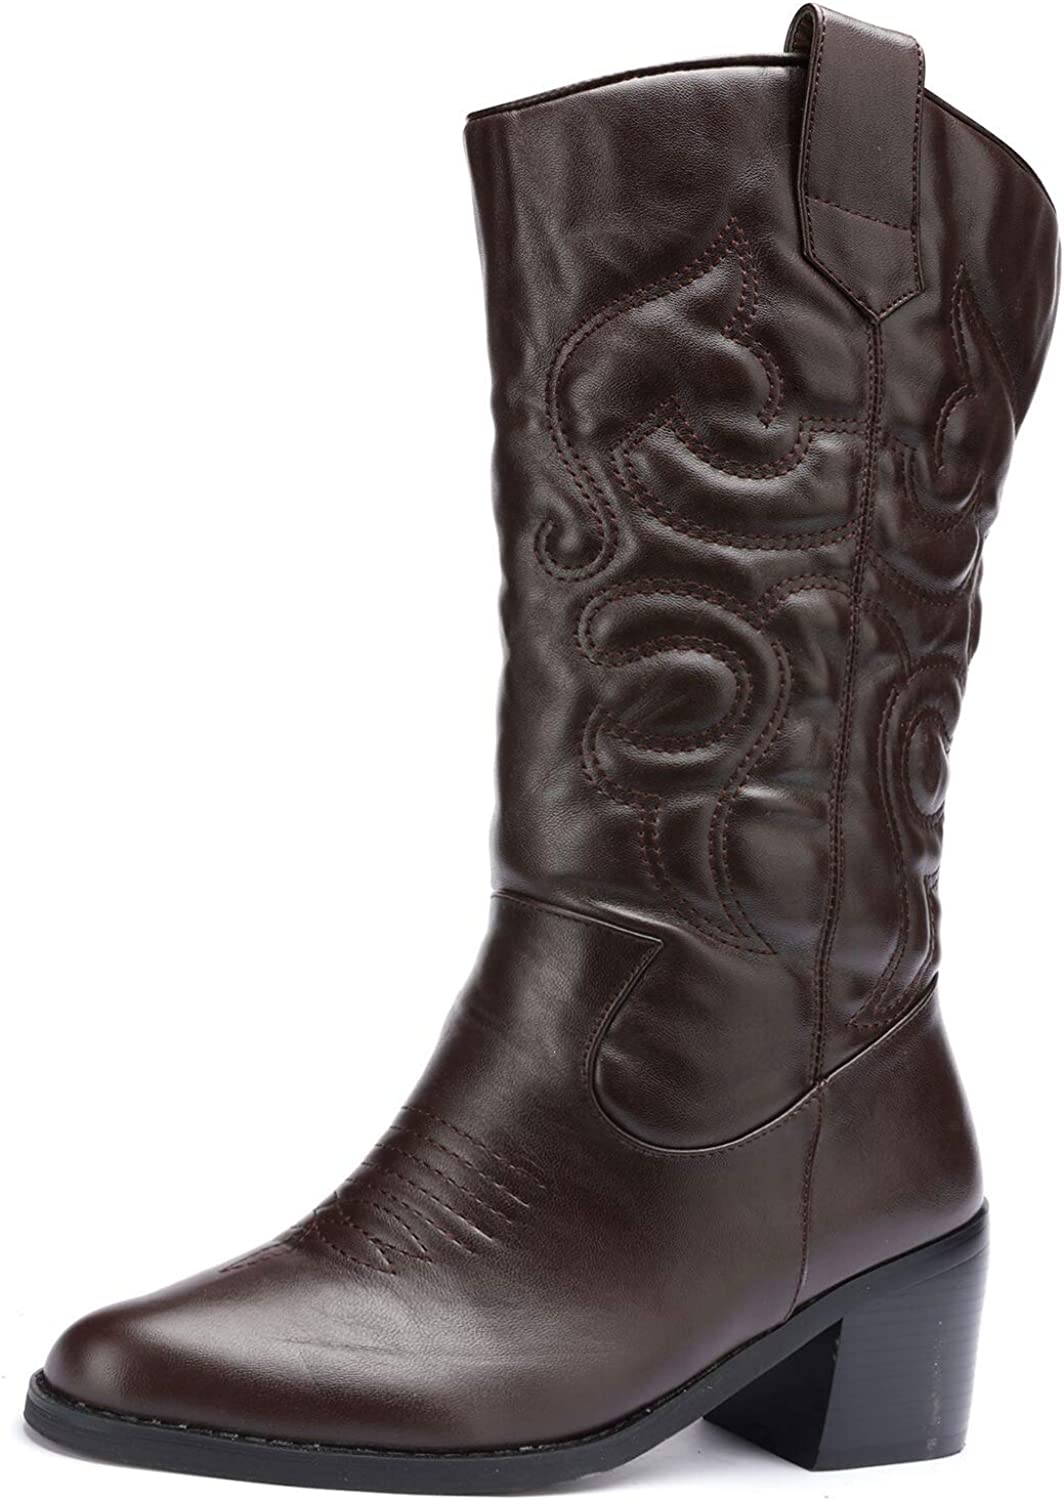 Odema Womens Wide Toe Cowboy Western Tabs Boots Low Heel Pull On Mid Calf Bootie